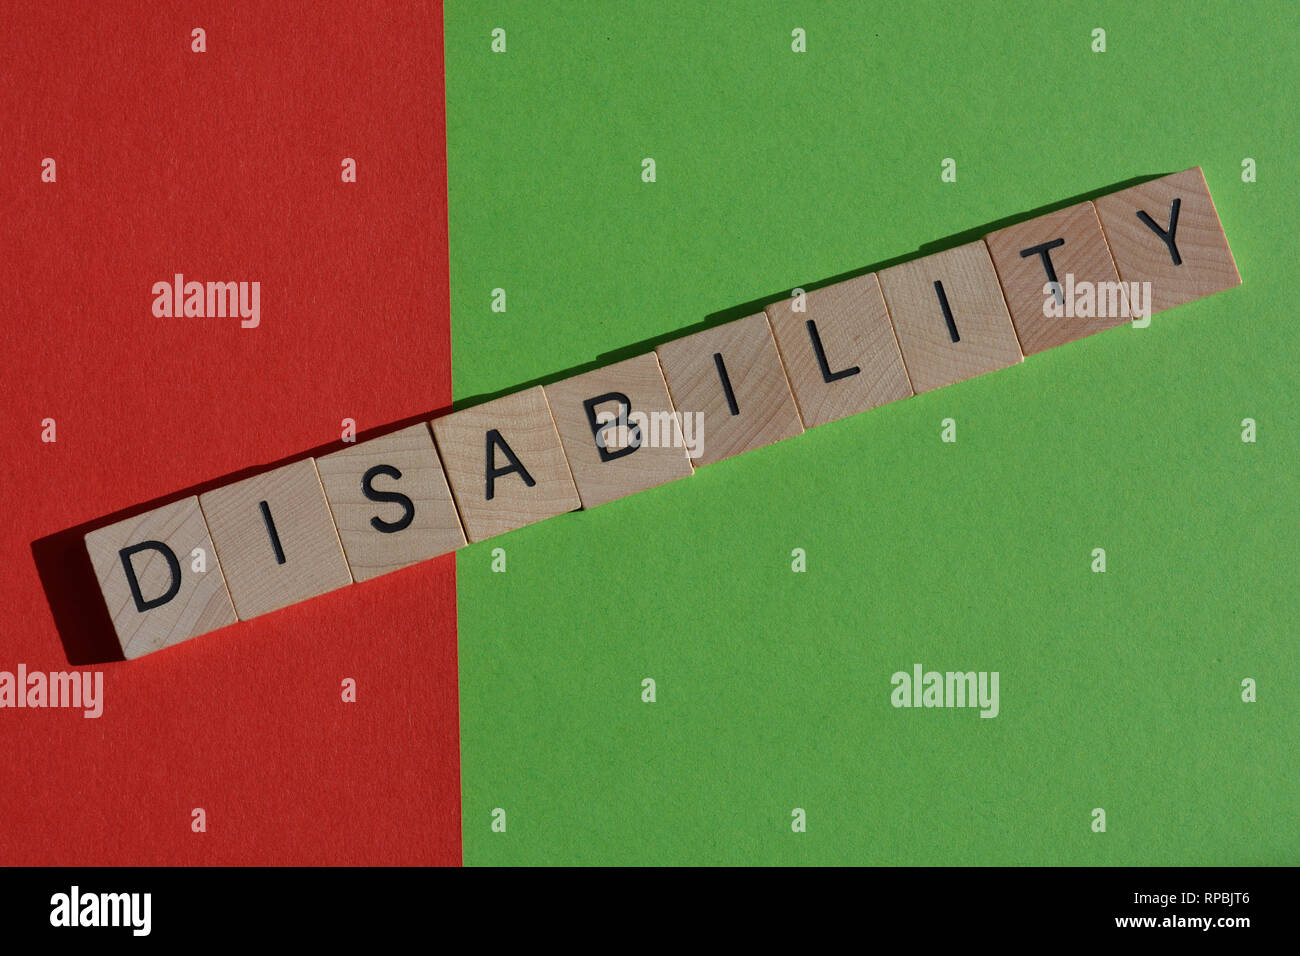 Creative Concept : Disability in wooden letters,  Dis on red and Ability on green background, - Stock Image